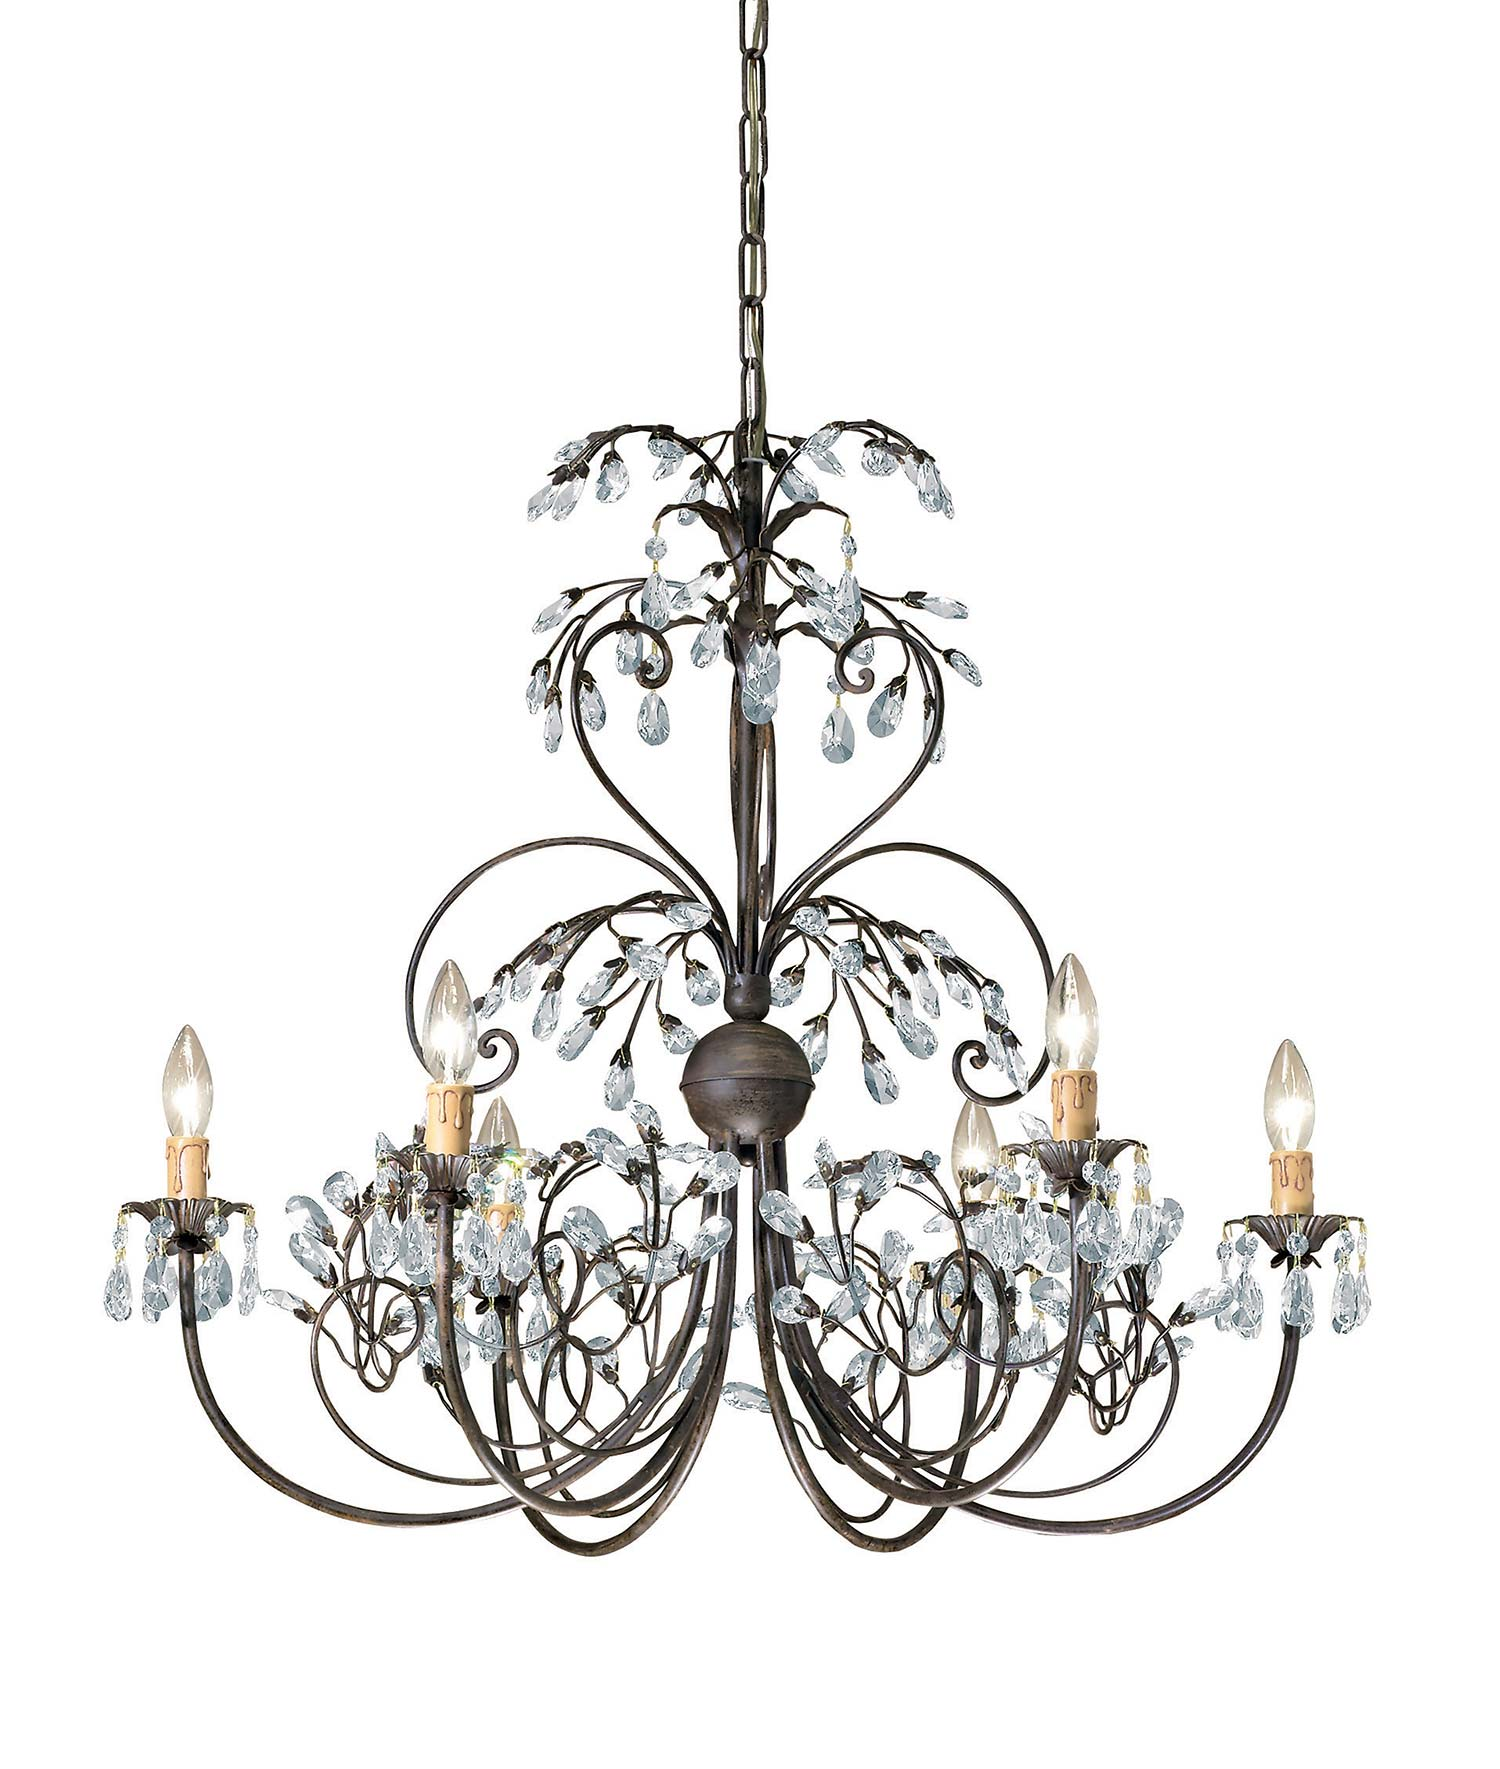 1500x1769 Impressive Lighting Crystorama Chandeliers Crystalroma For Crystal